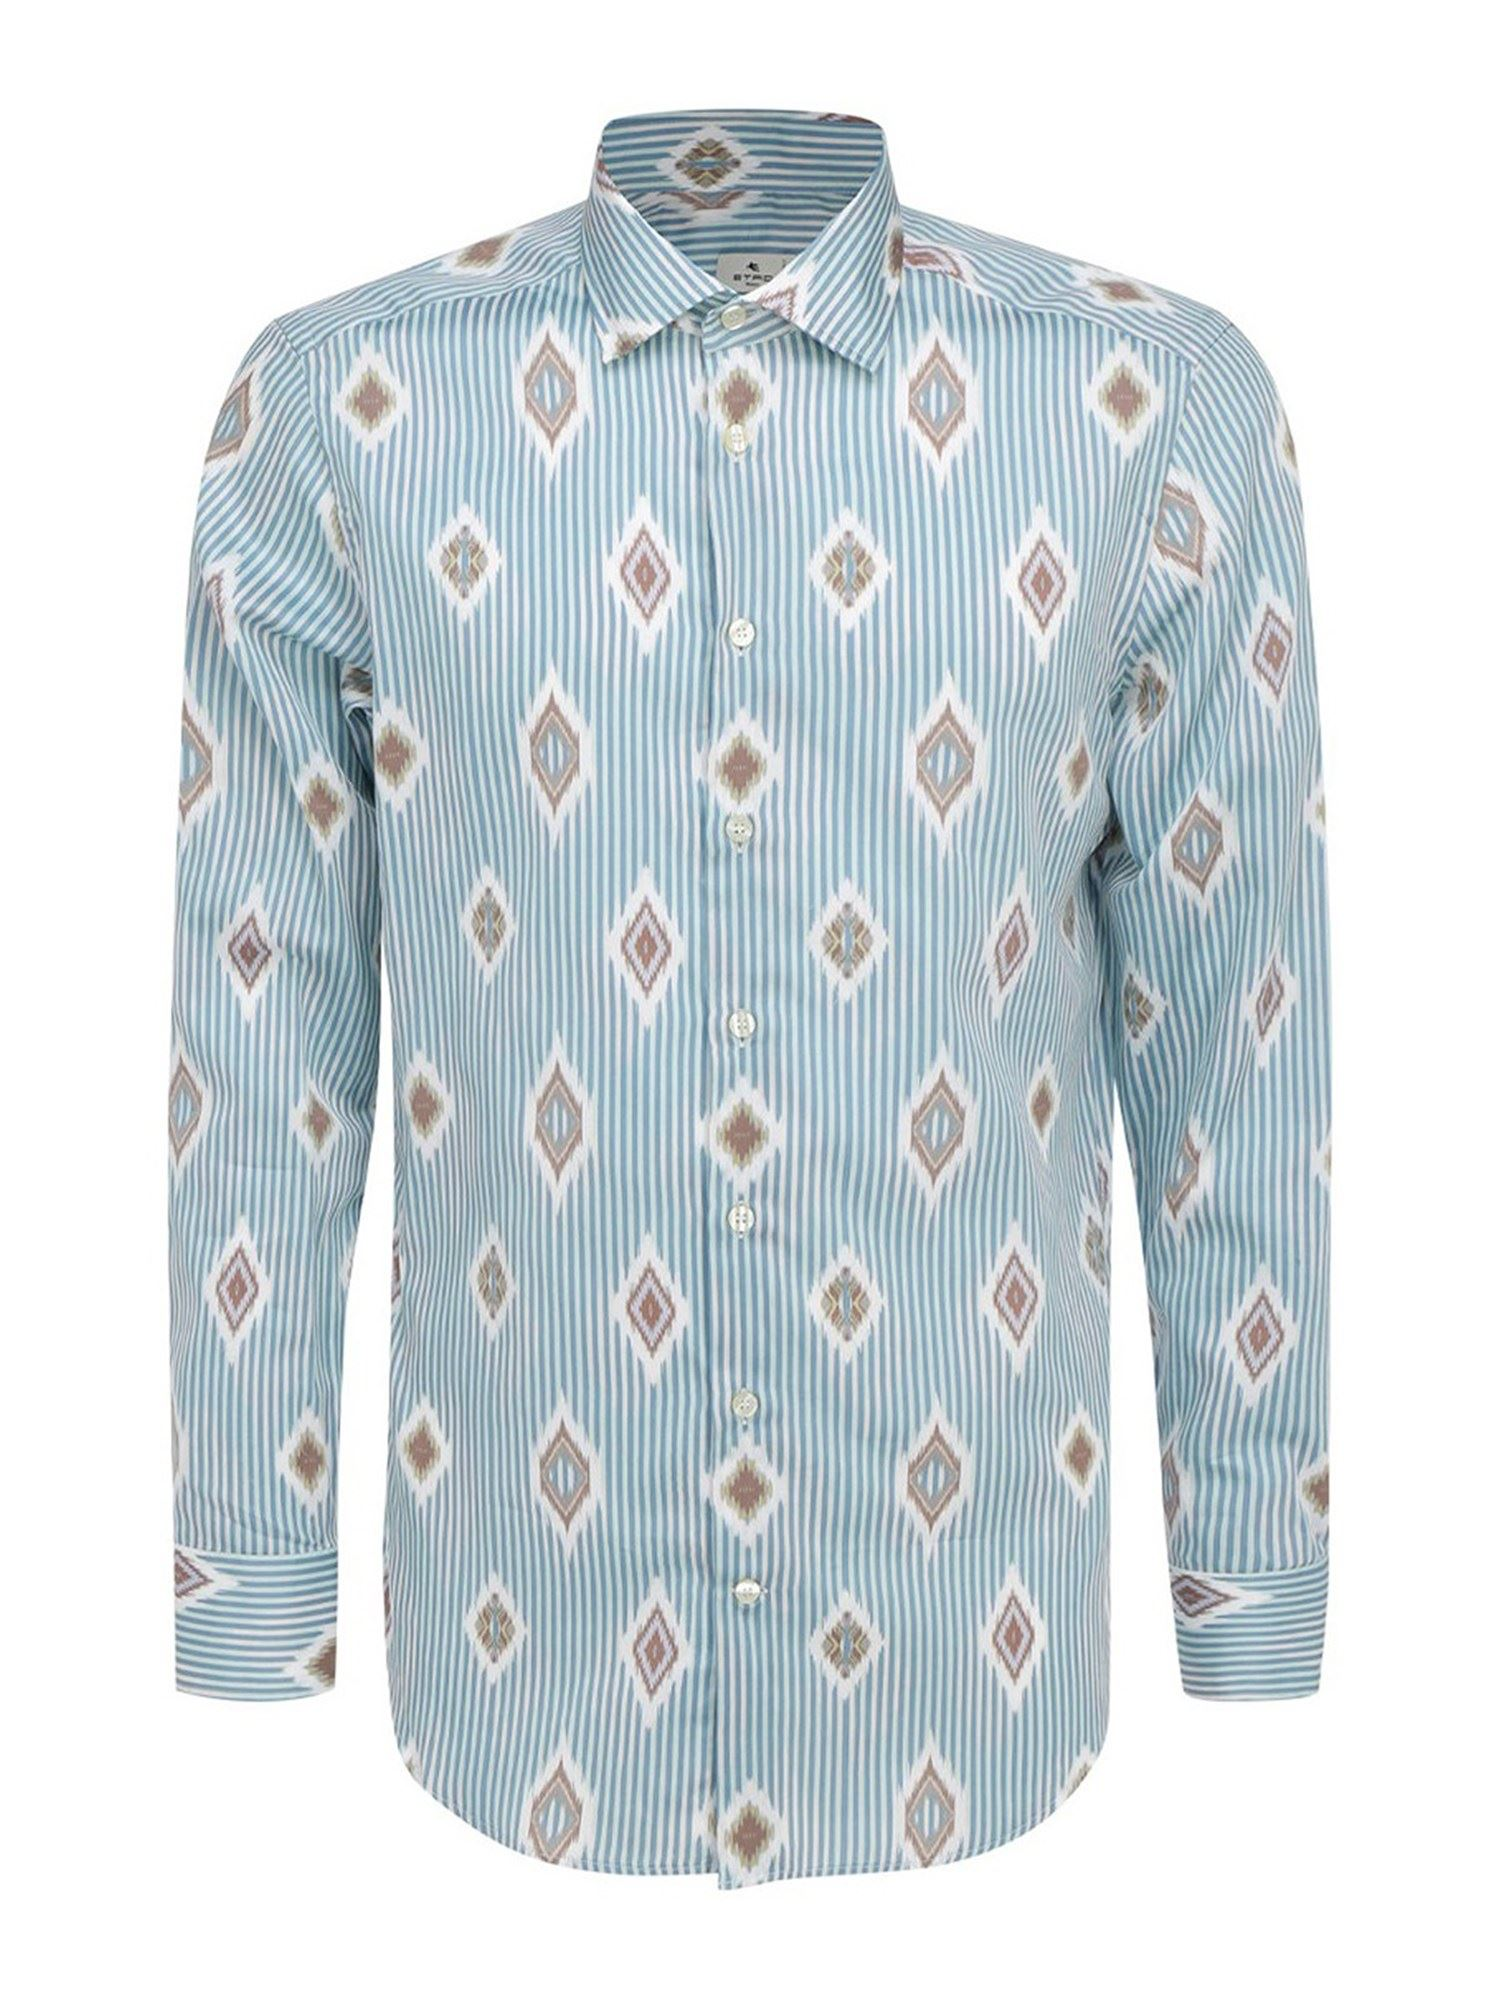 Etro LOZENGE PATTERN STRIPED MULTICOLOR SHIRT